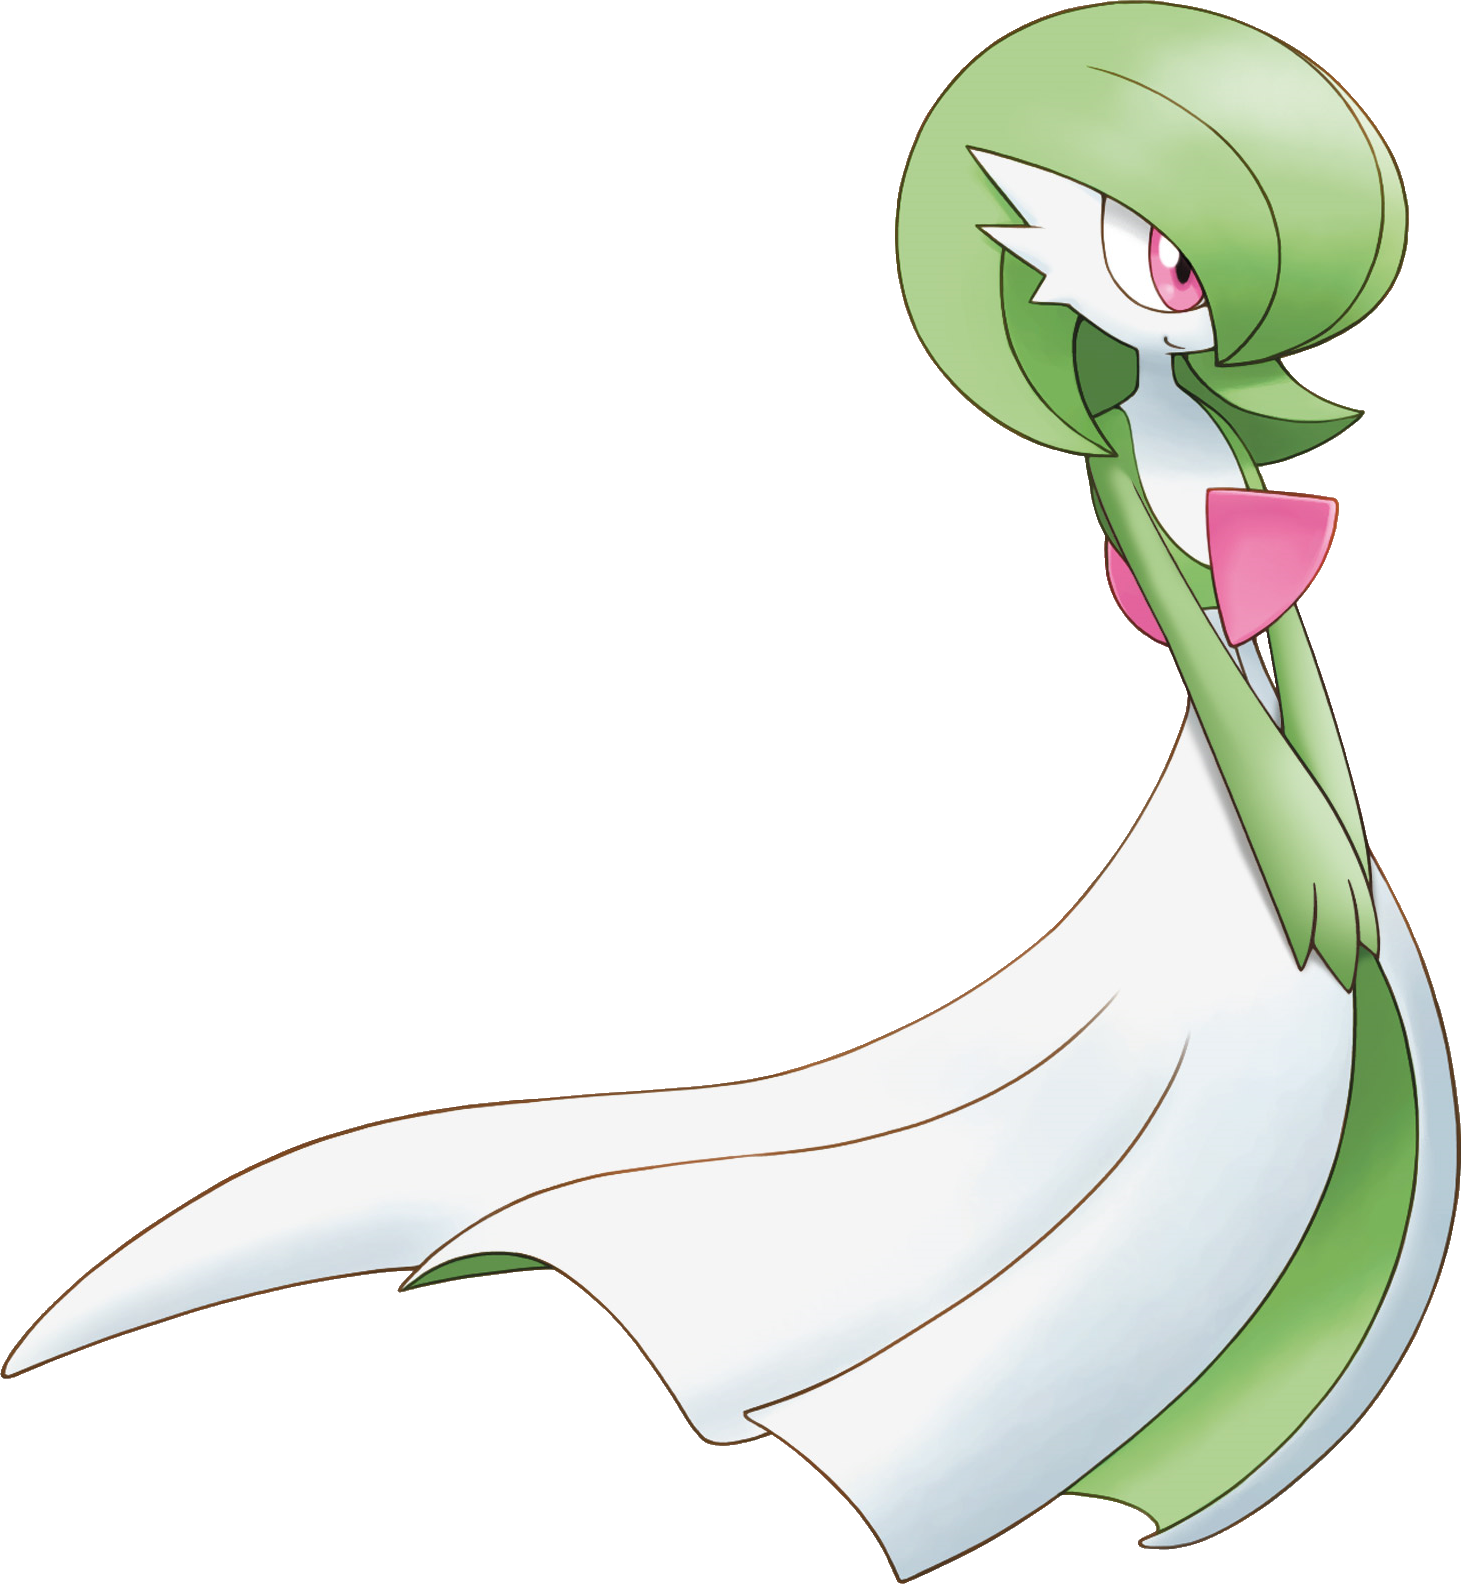 Gardevoir joy studio design gallery best design - Image 282gardevoir Pokemon Mystery Dungeon Explorers Of Sky Png Pok Mon Wiki Fandom Powered By Wikia